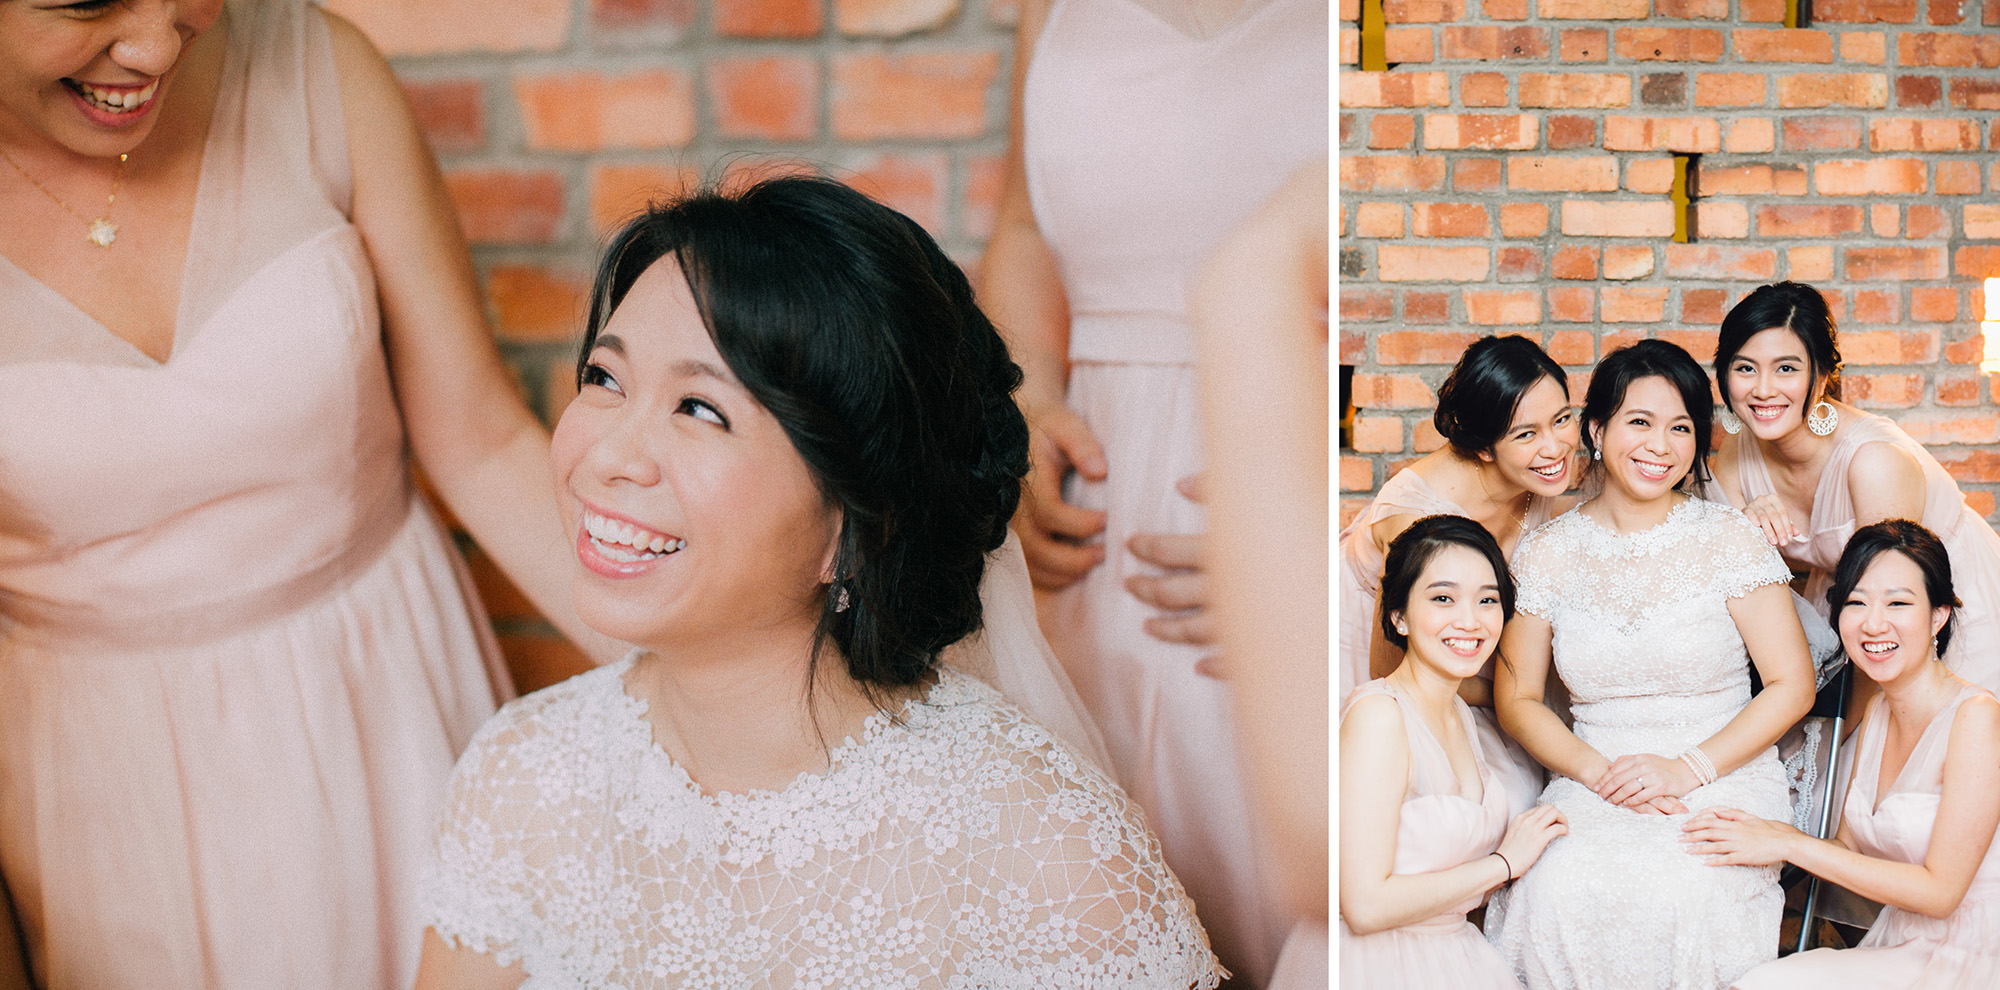 12-hellojanelee-sam grace-malaysia-wedding-day